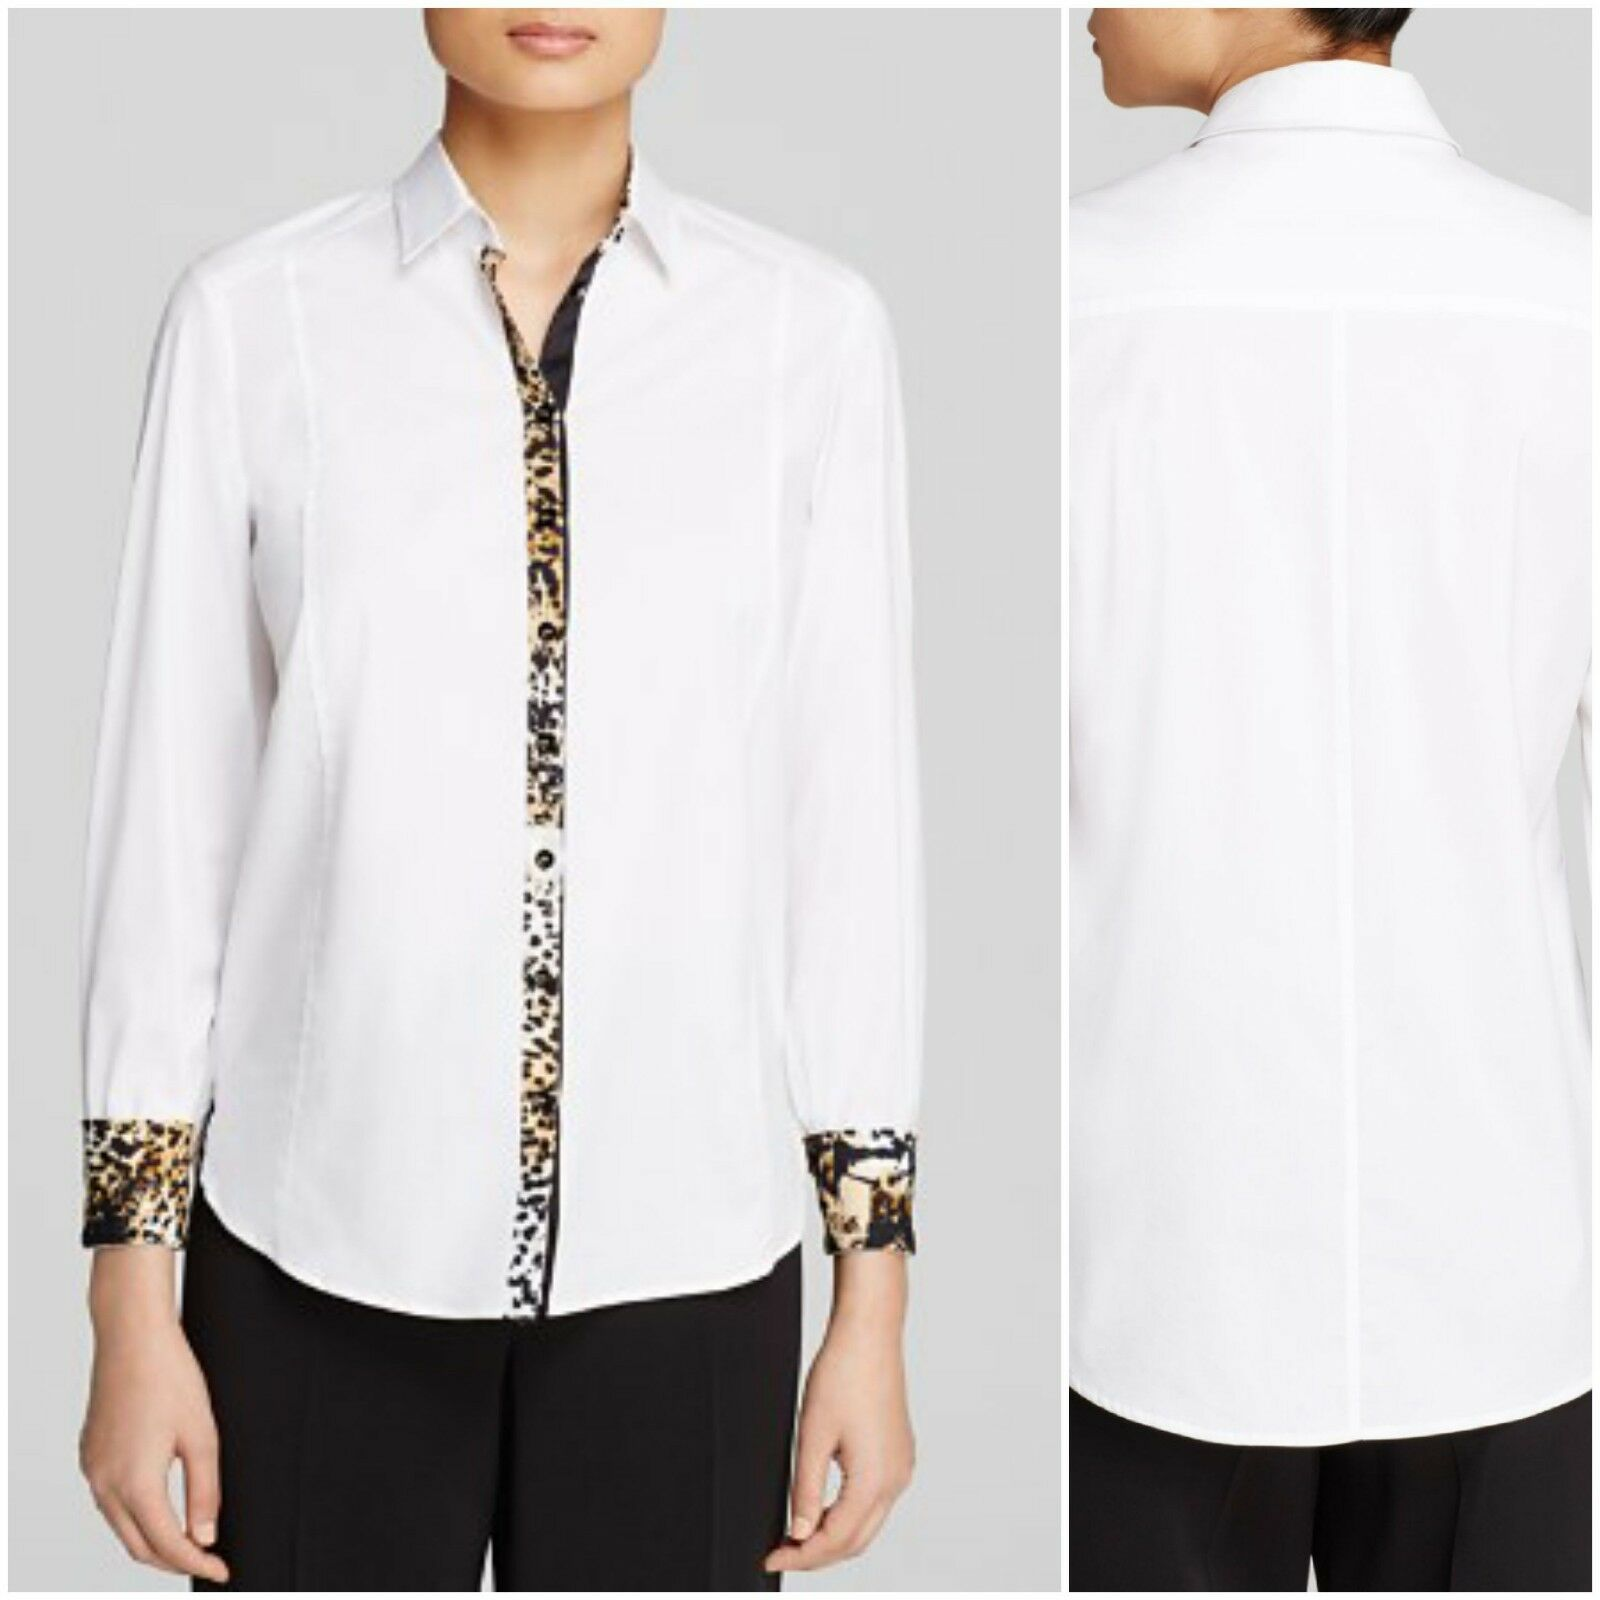 BASLER whitw shirt w animal print trim Größe 52